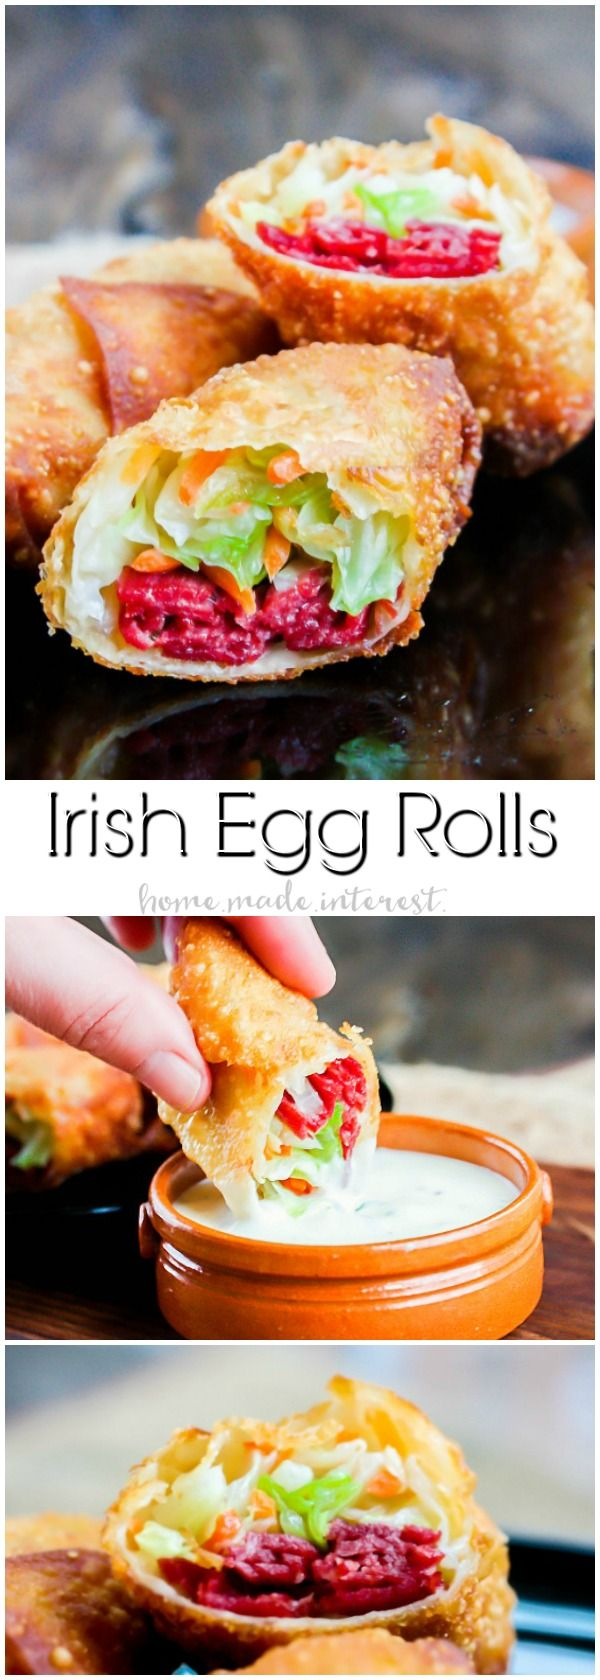 Irish egg rolls take all of the ingredients for a traditional corned beef and cabbage dinner and stuff them into a crispy egg roll.